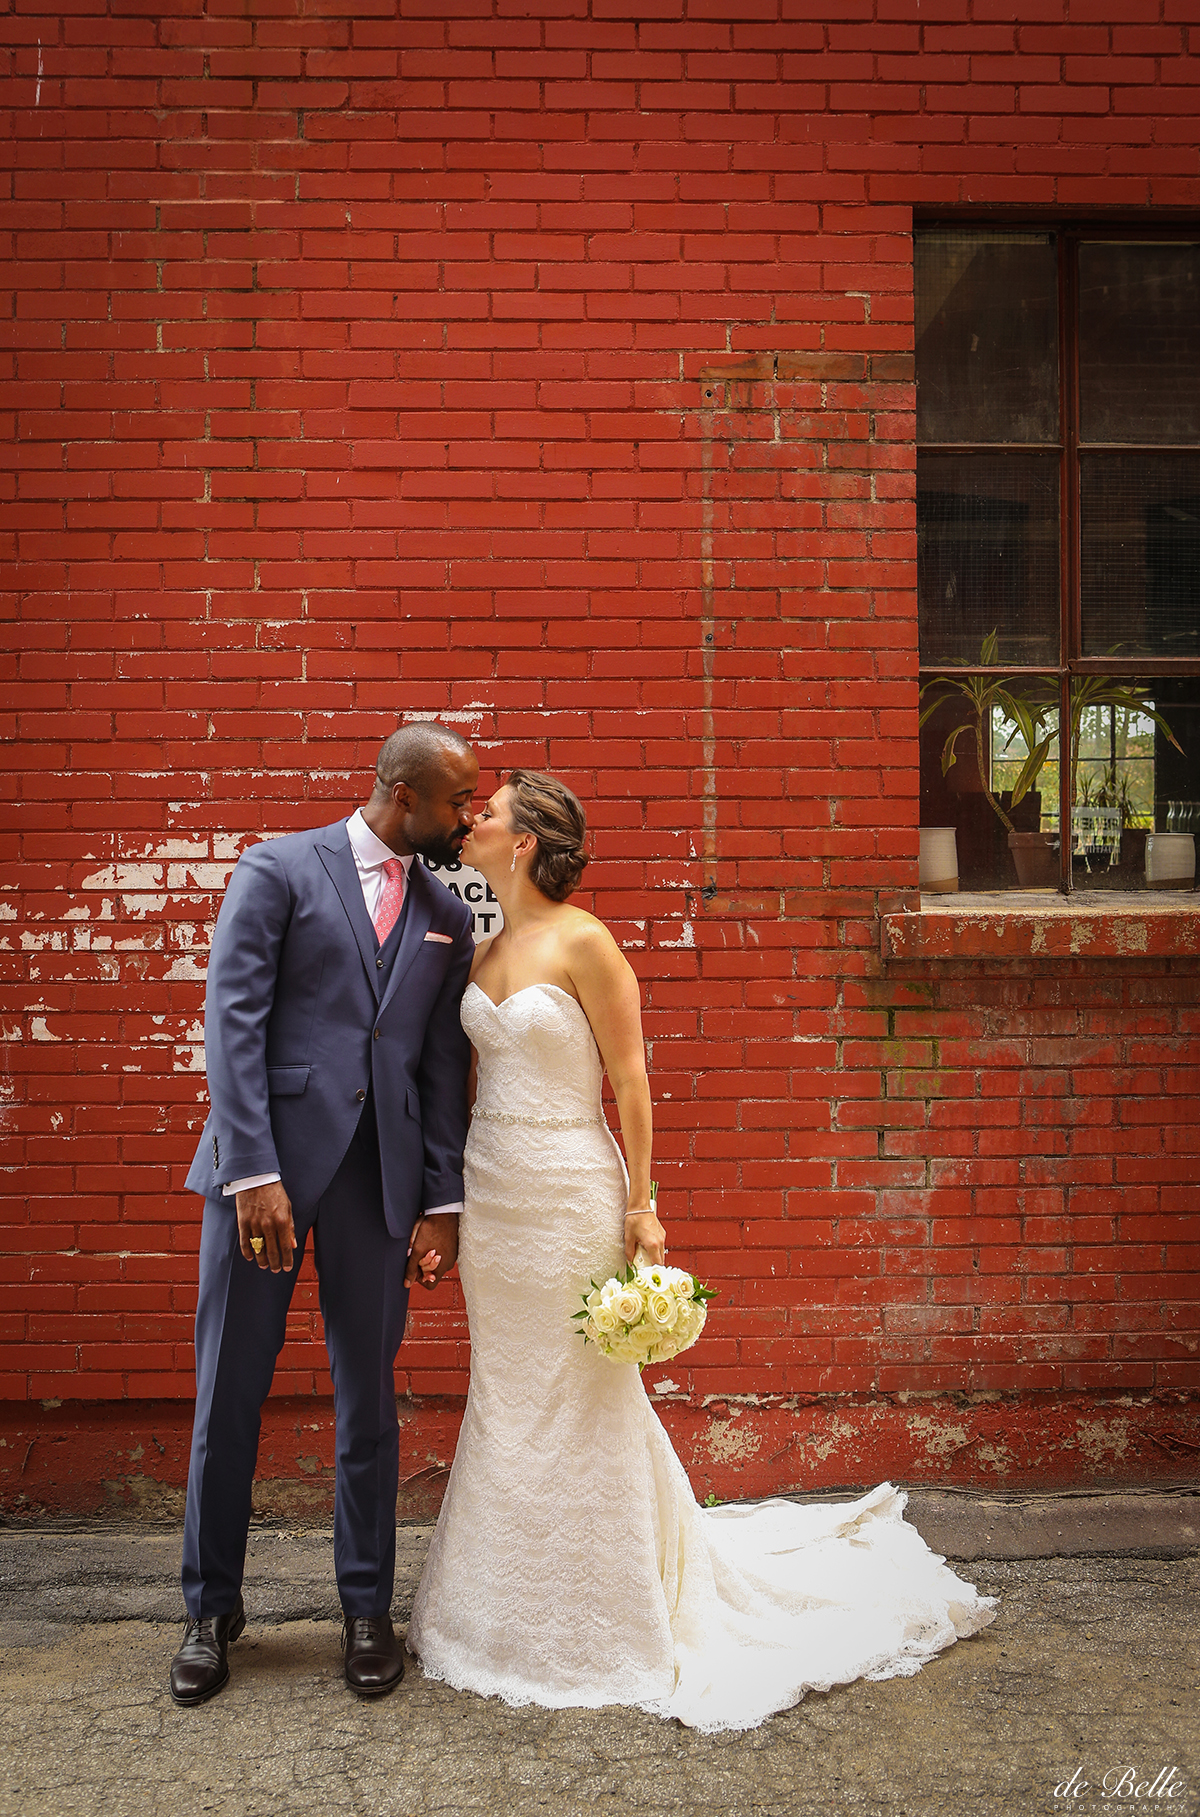 Montreal-Wedding-Photographer-Debelle-LD11